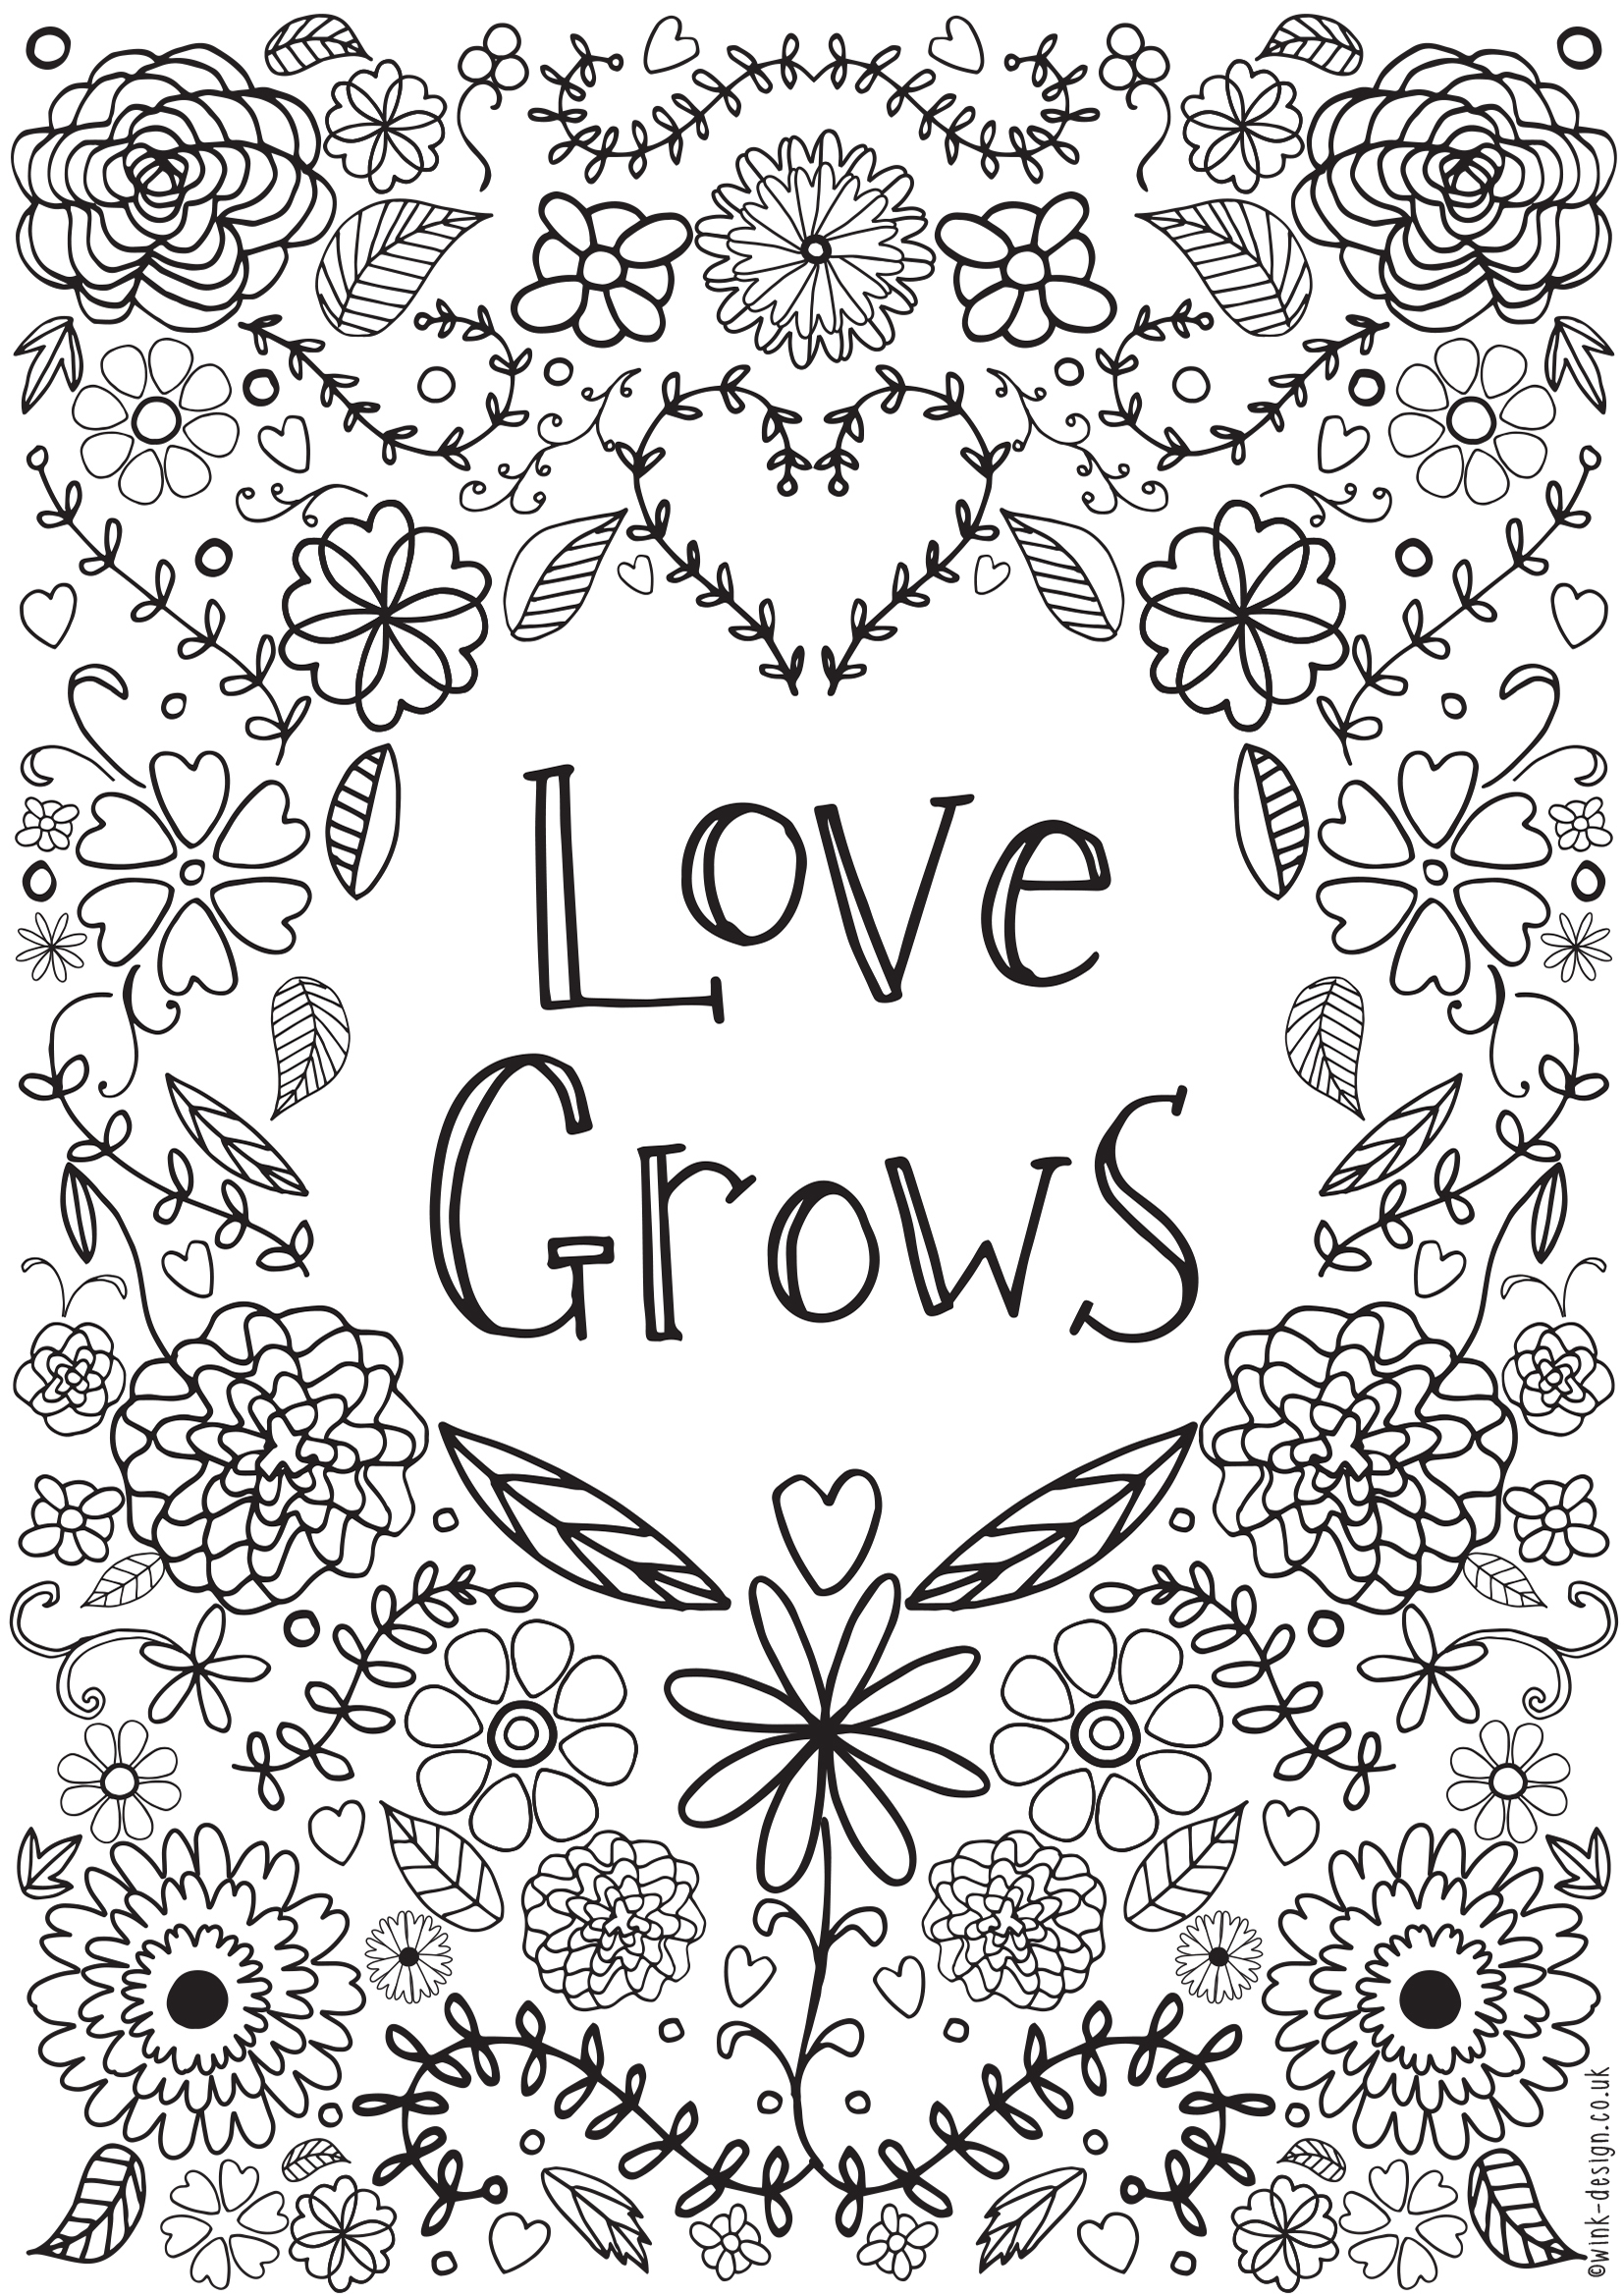 Free Printable Adult Colouring Pages - Inspirational Quotes For The - Free Printable Quote Coloring Pages For Adults